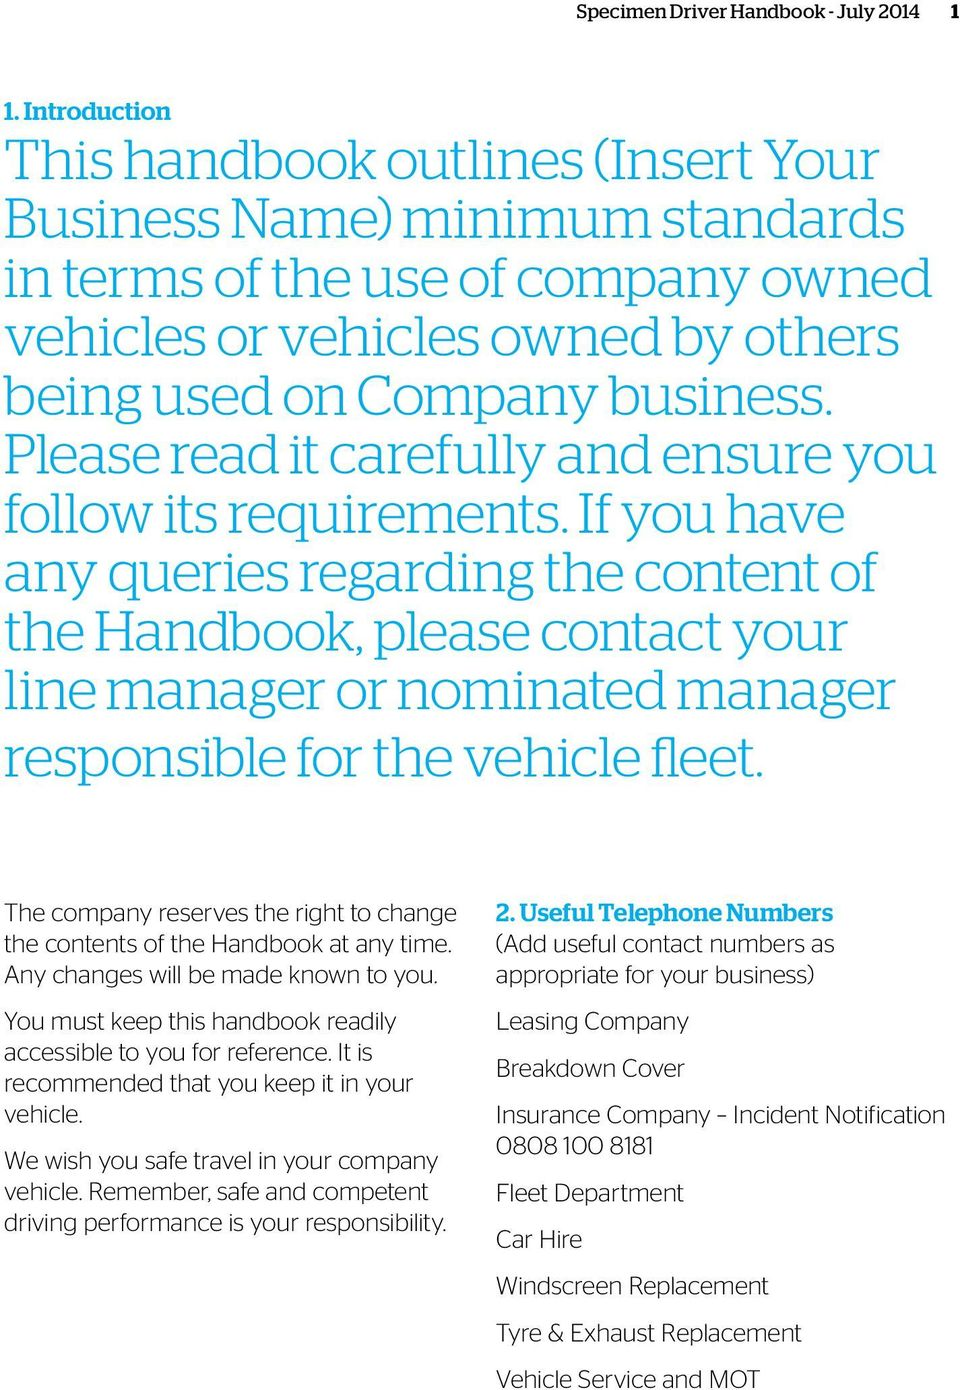 If you have any queries regarding the content of the Handbook, please contact your line manager or nominated manager responsible for the vehicle fleet.